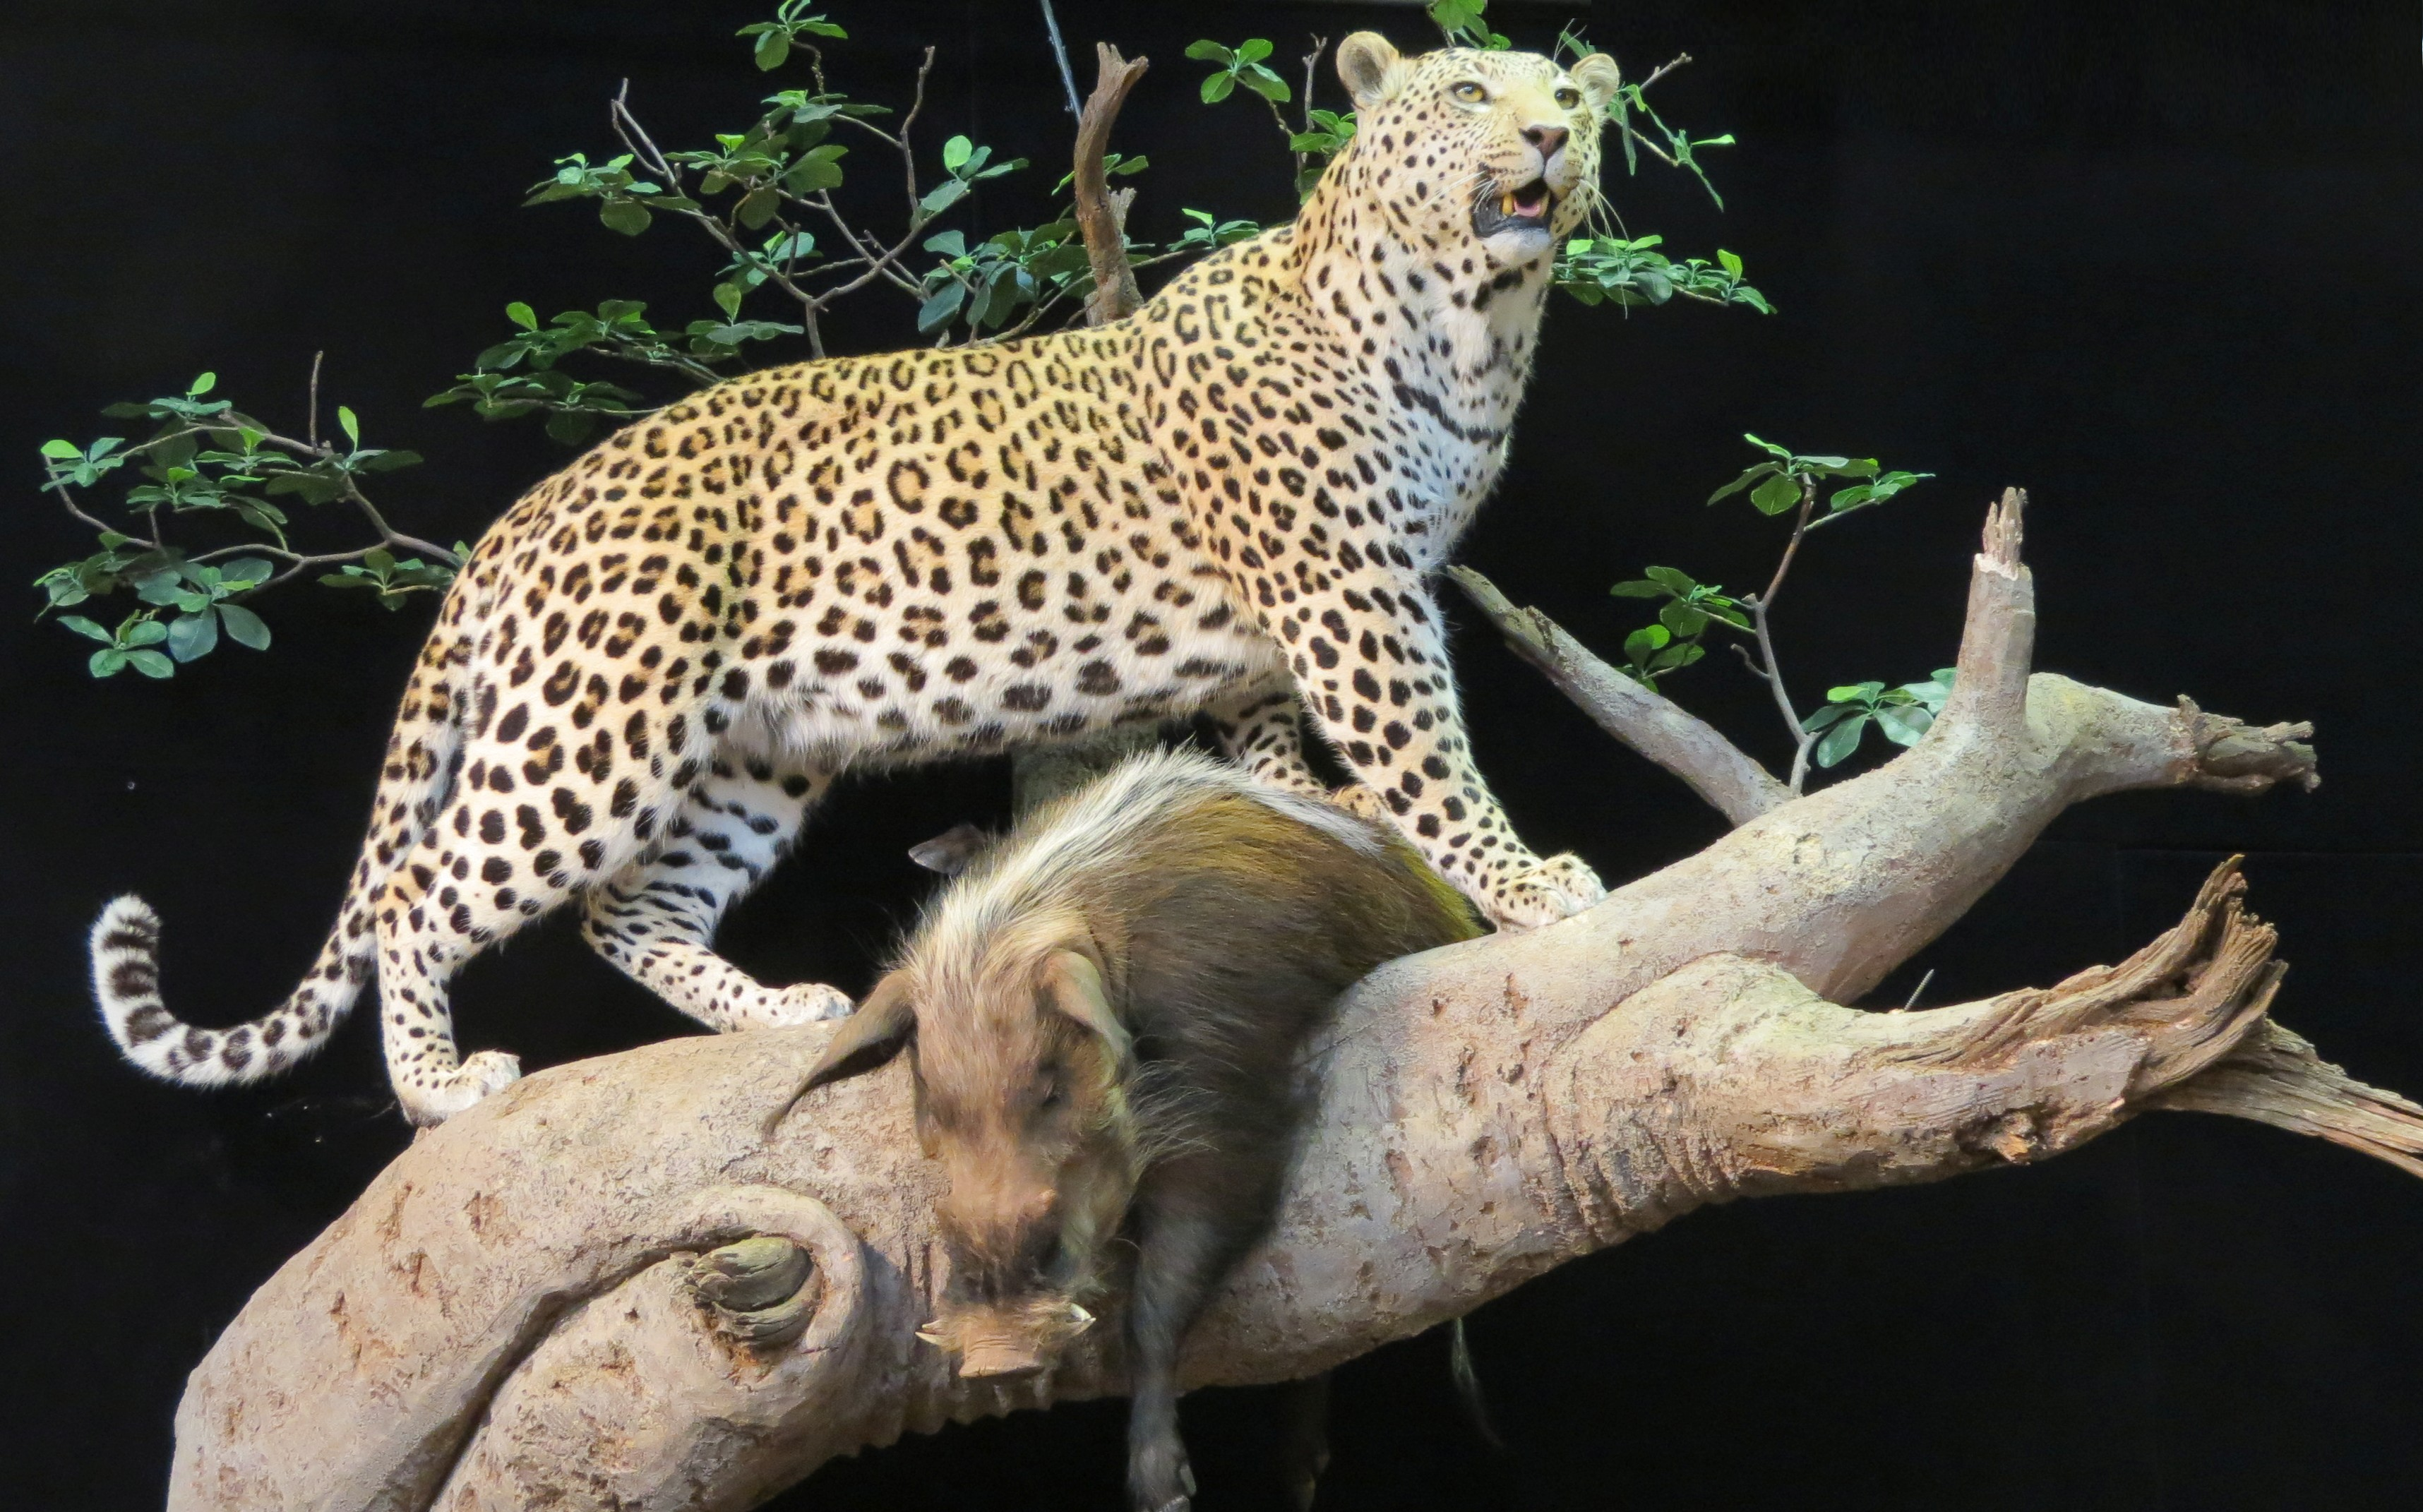 A sport show is a great place to view quality taxidermy. You can see some memorable exotic animals, and get ideas on how you'd like your next whitetail mounted.